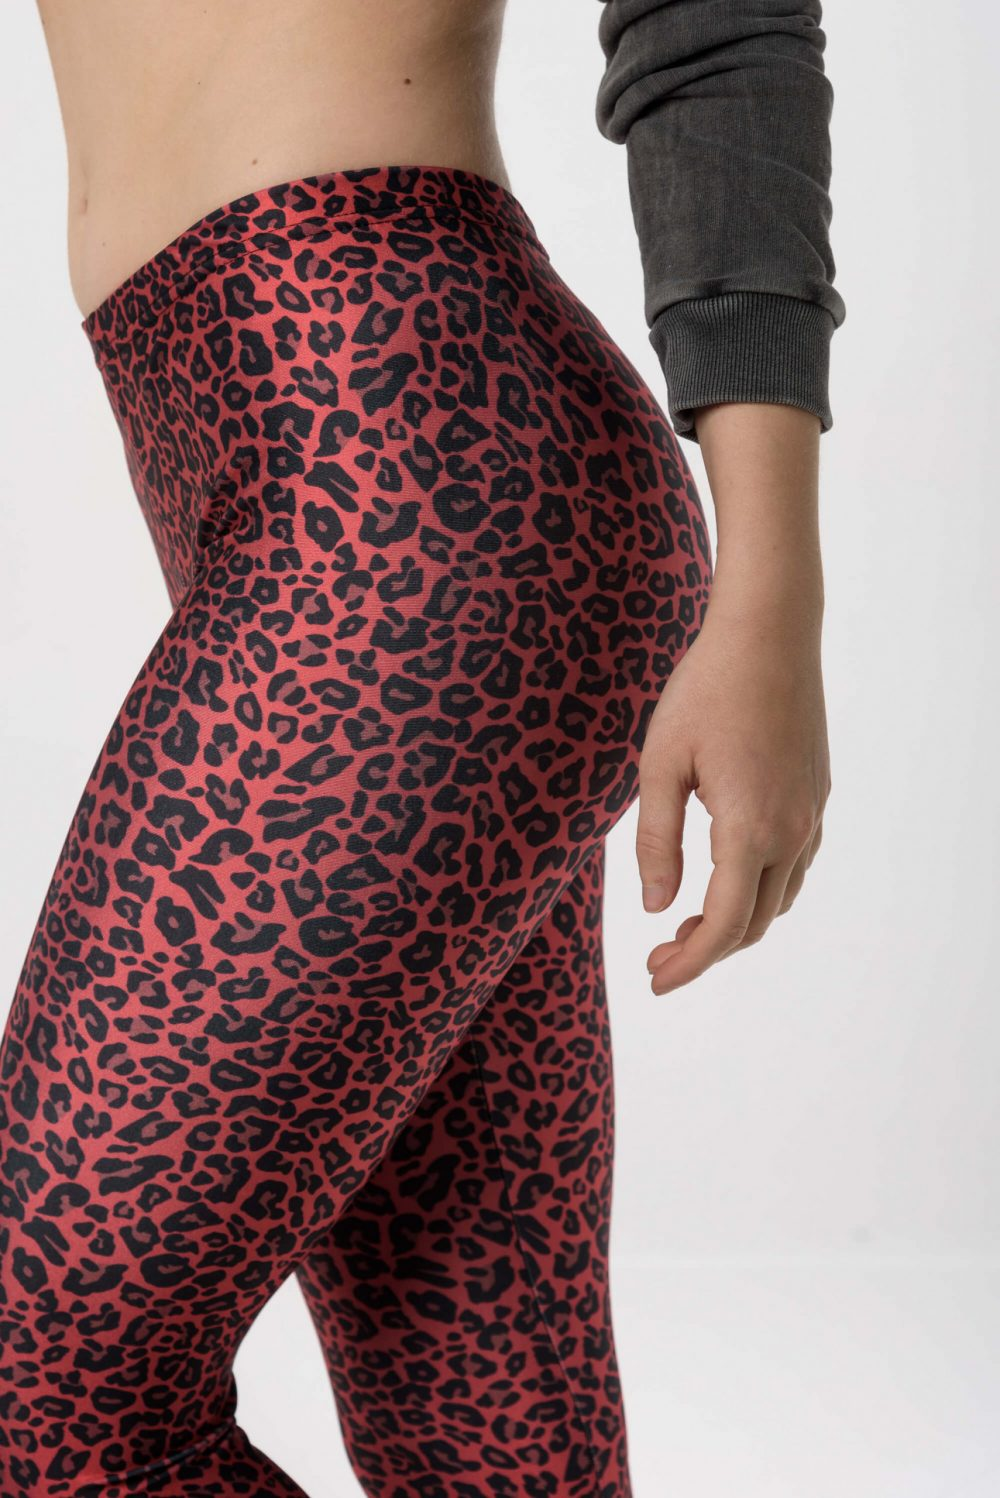 Heartbeatink The Animal Series Leggings